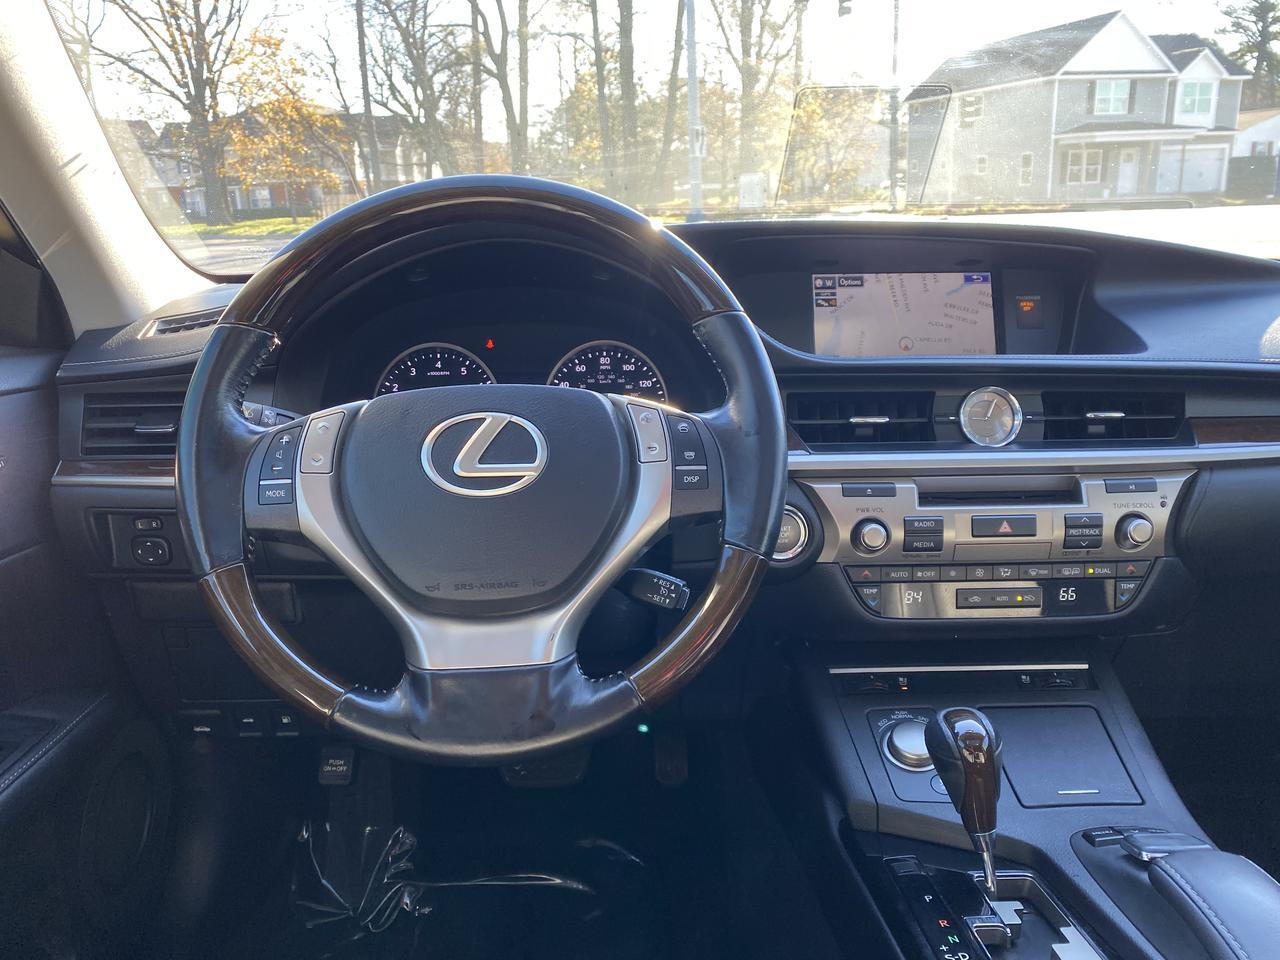 2015 LEXUS ES 350 , WARRANTY, LEATHER, SUNROOF, NAV, HEATED/COOLED SEATS, AUX/USB PORT, BACKUP CAM, CLEAN CARFAX! Norfolk VA